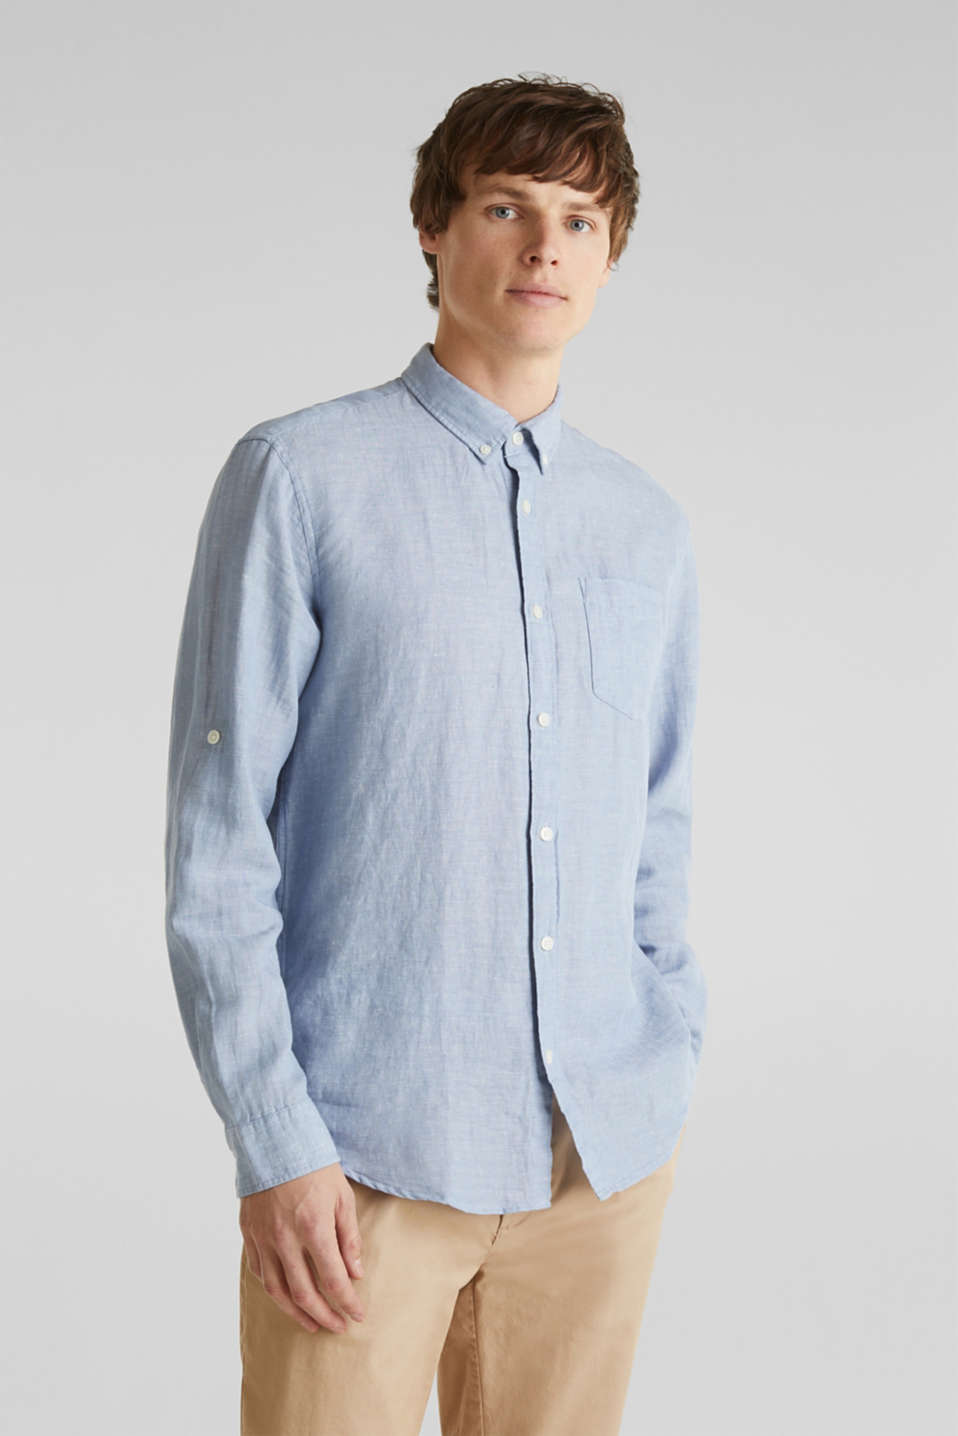 Esprit - I hørmix: button-down-skjorte